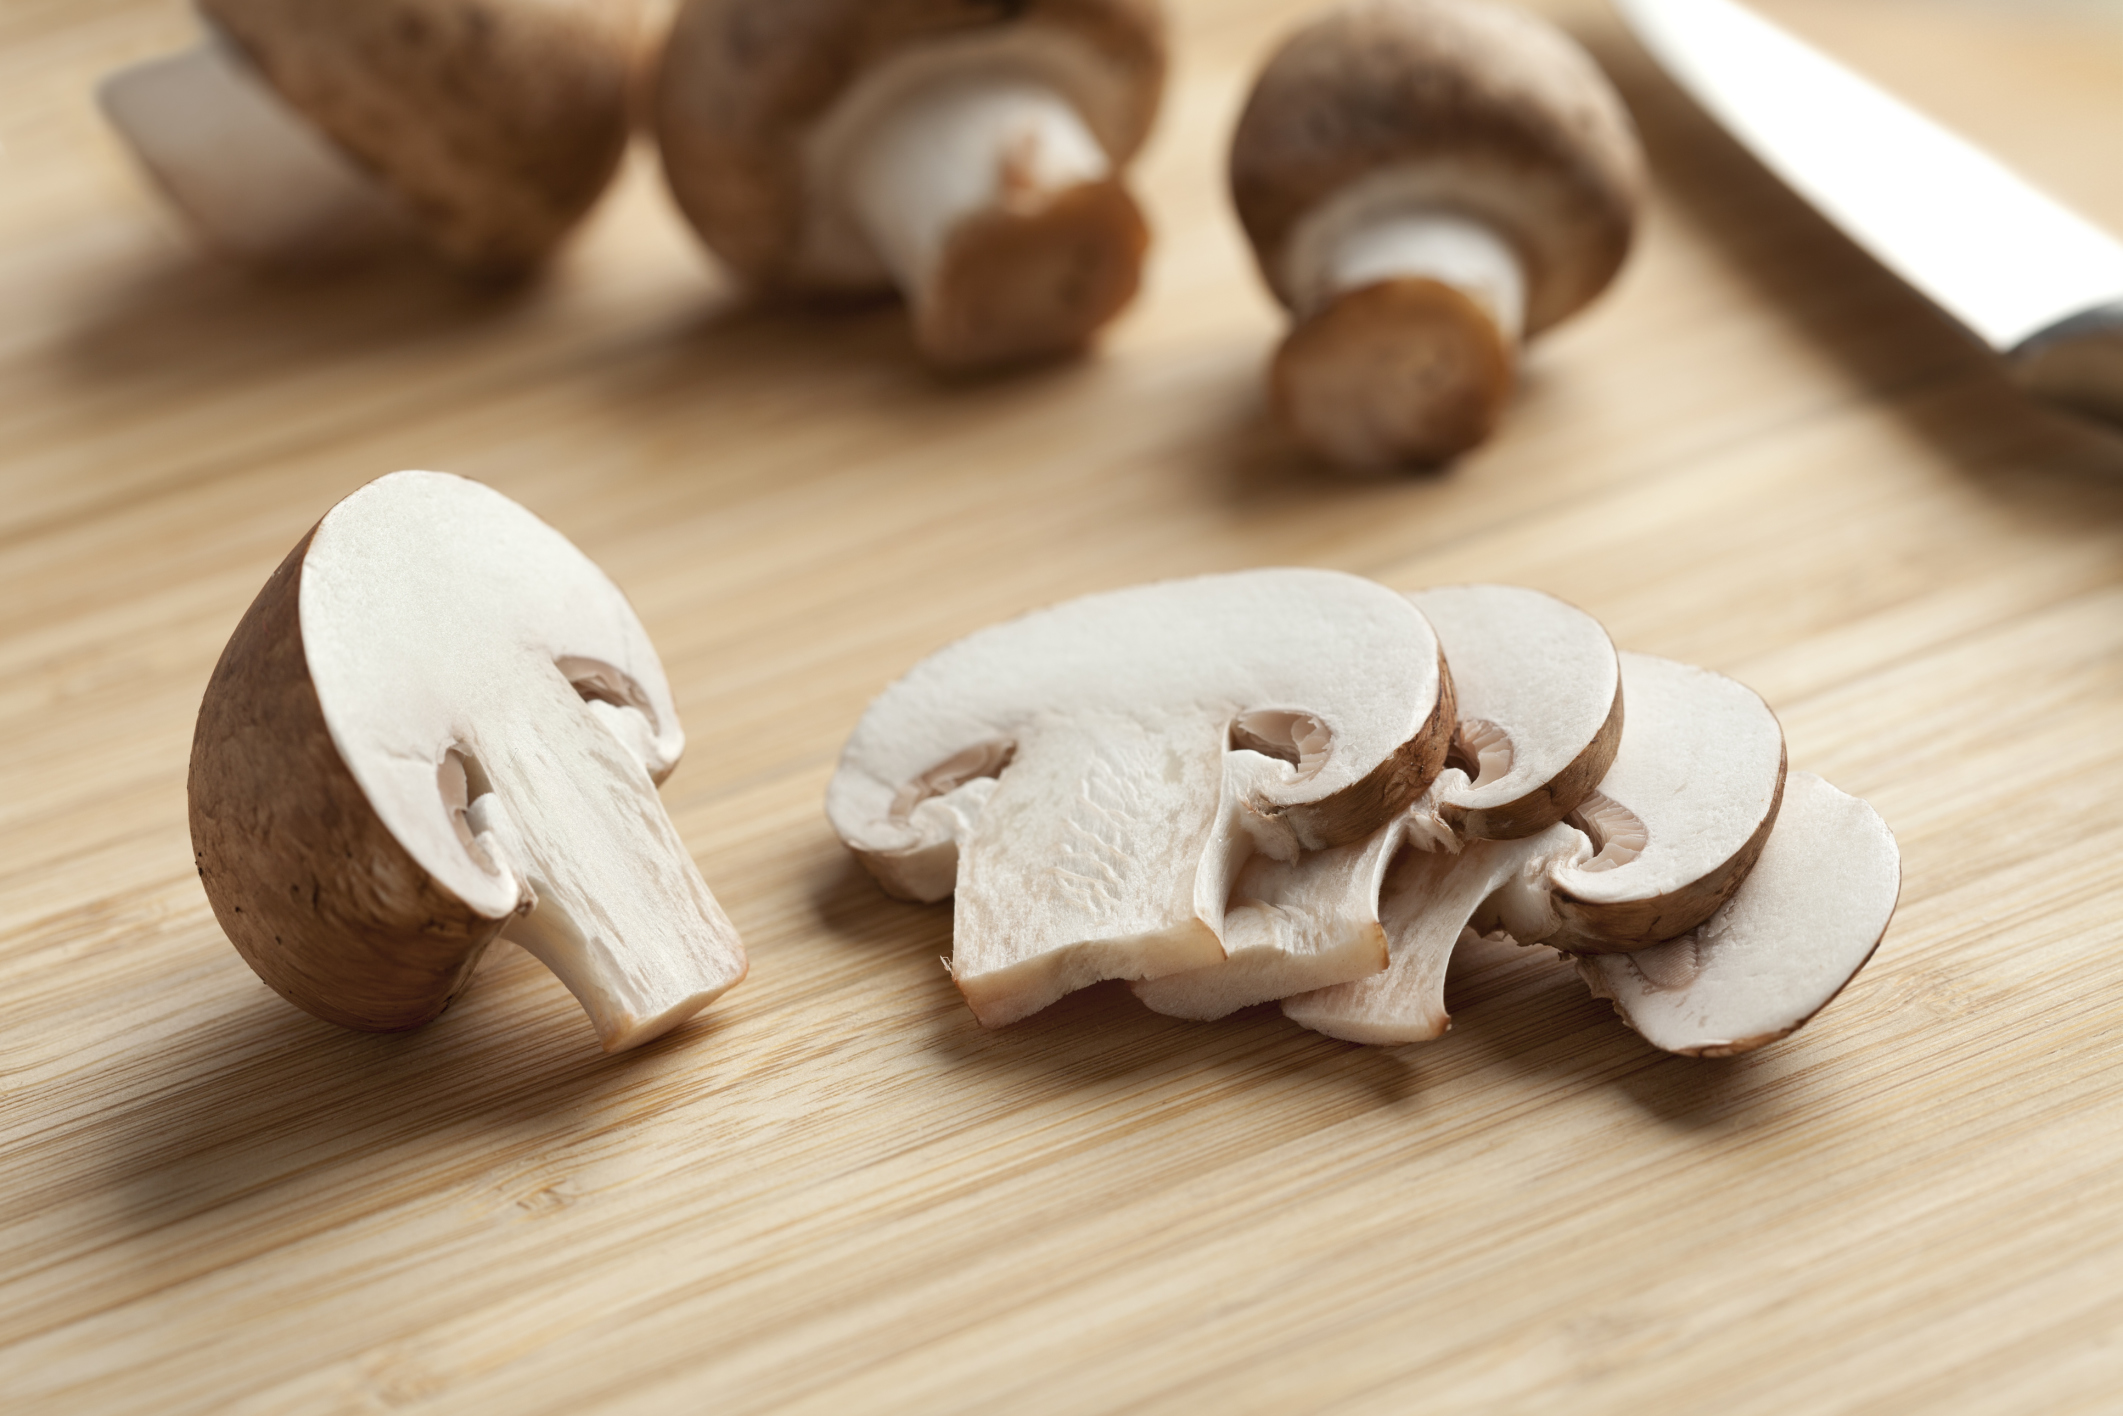 How to cook dried mushrooms: several options